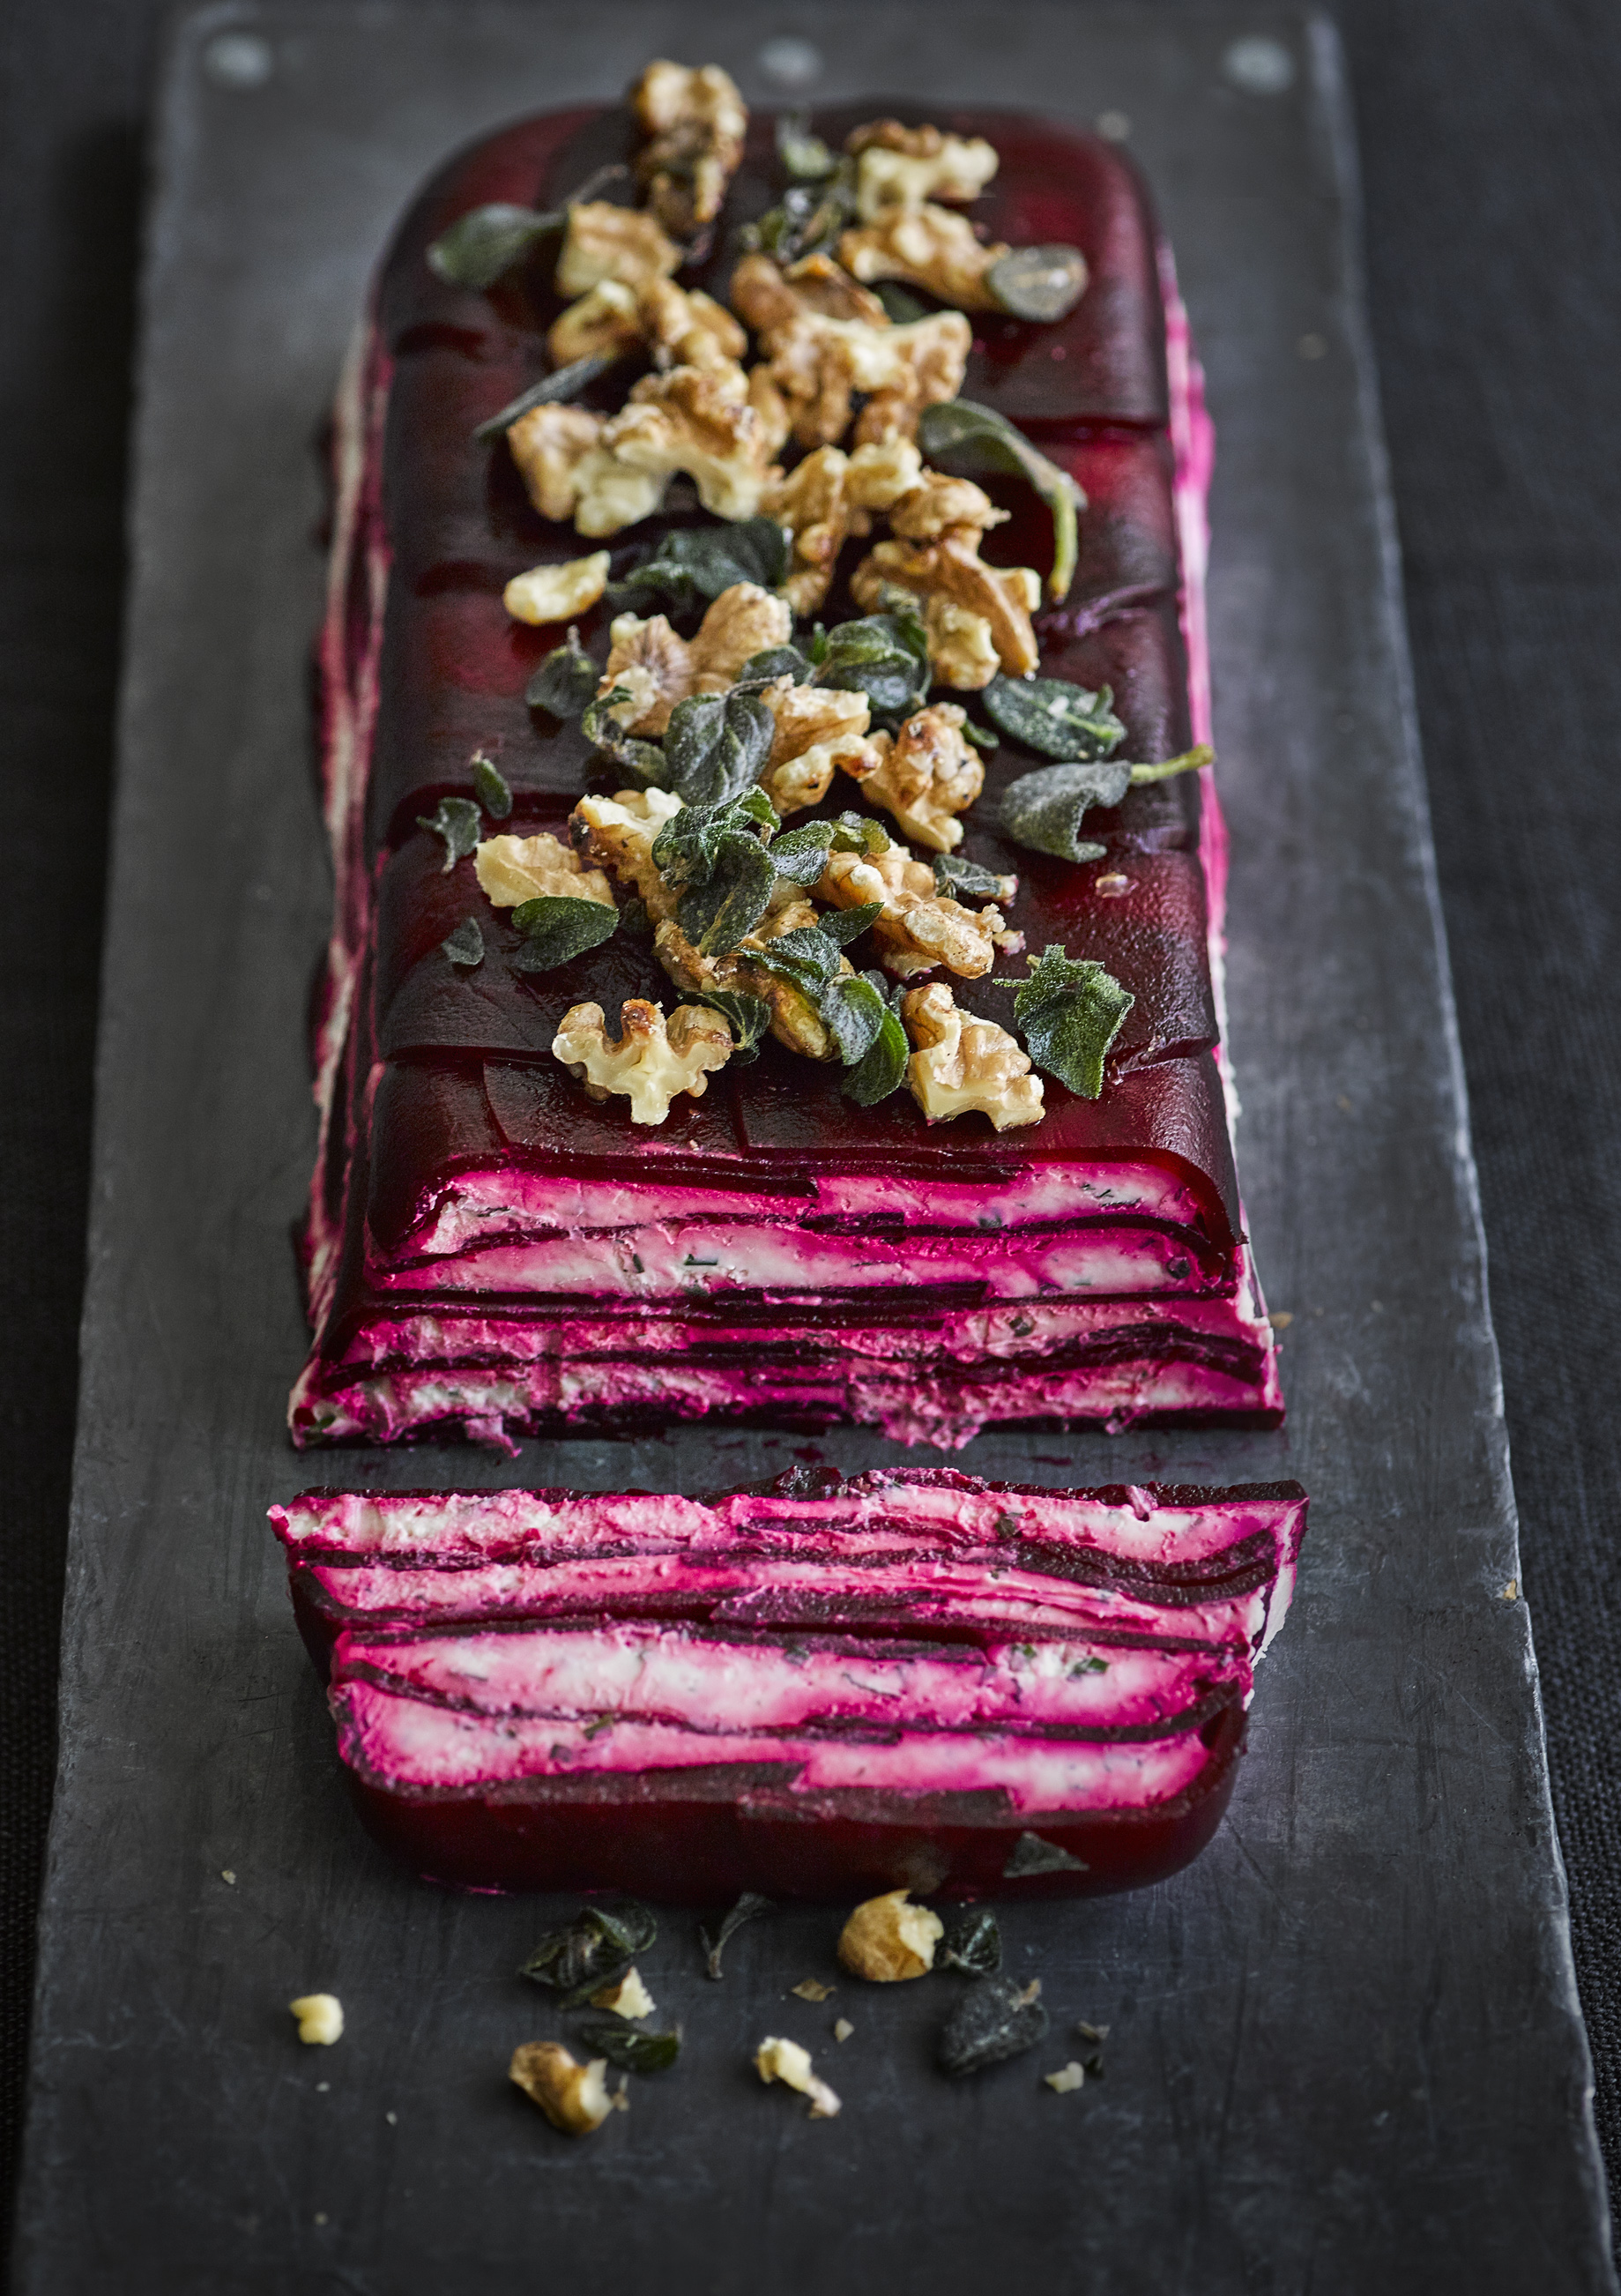 Tofu steak with beetroot noodles and dukkah - olive